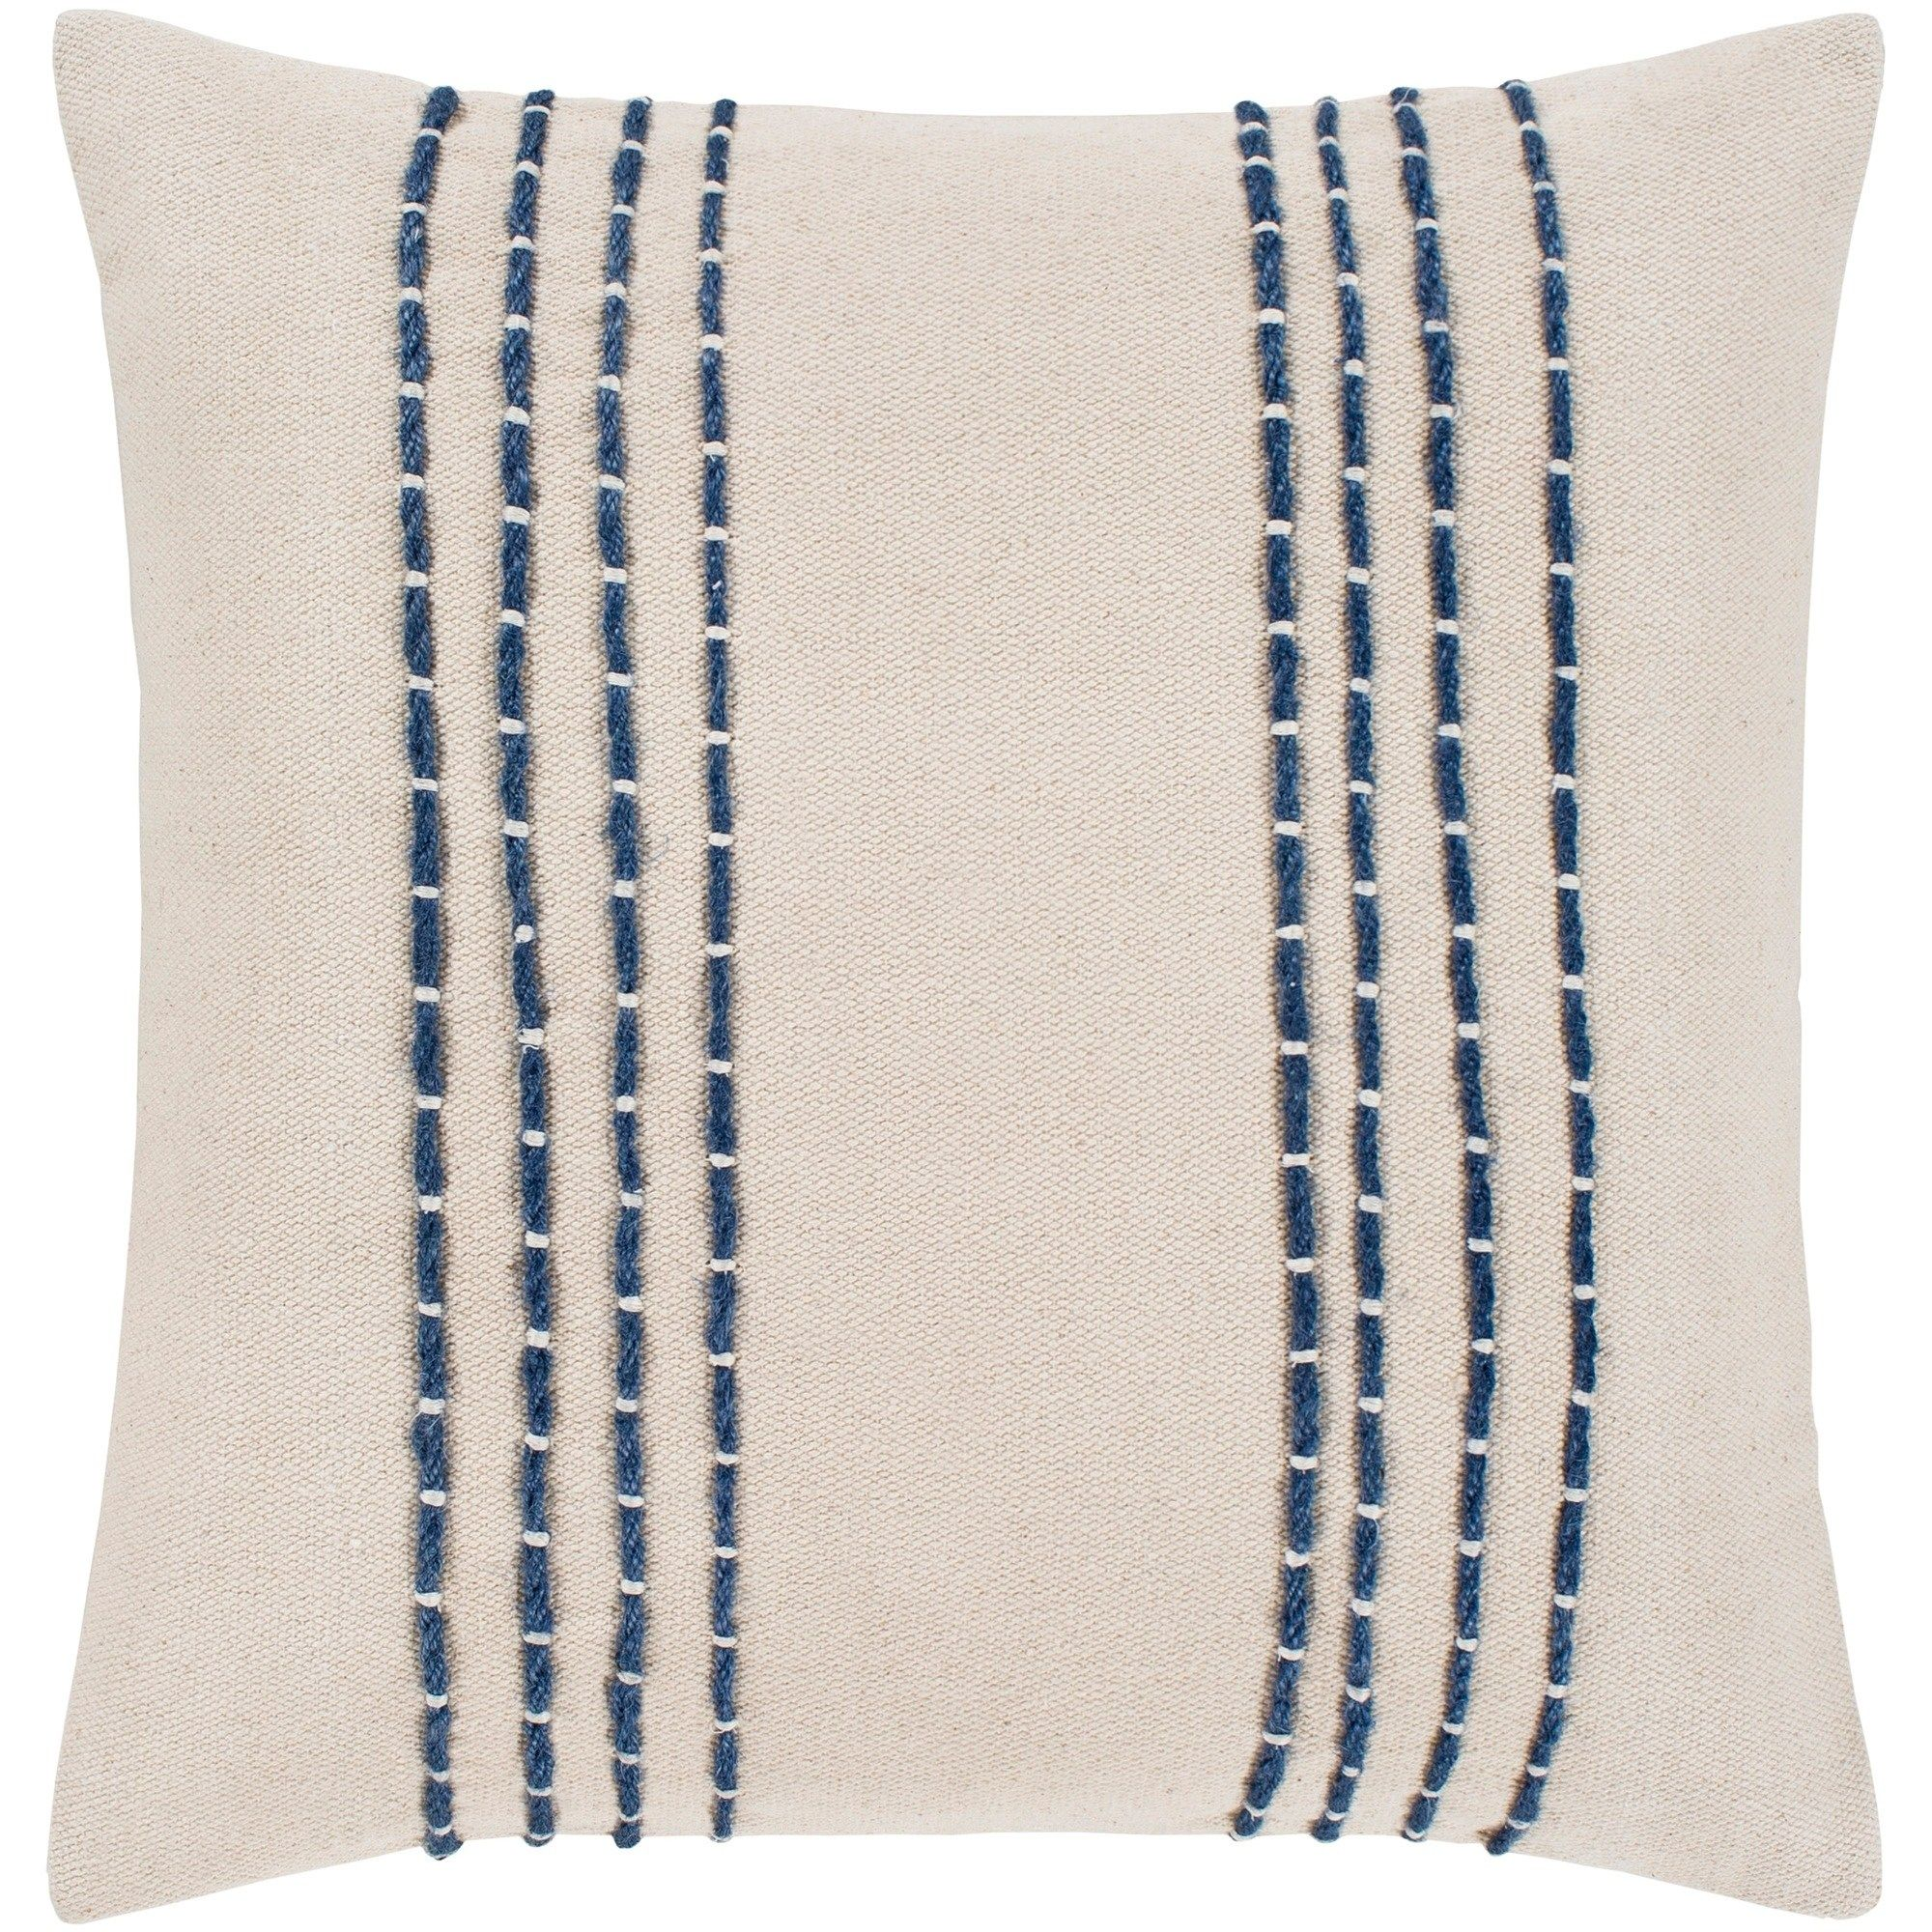 Striped Cotton Throw Pillow With